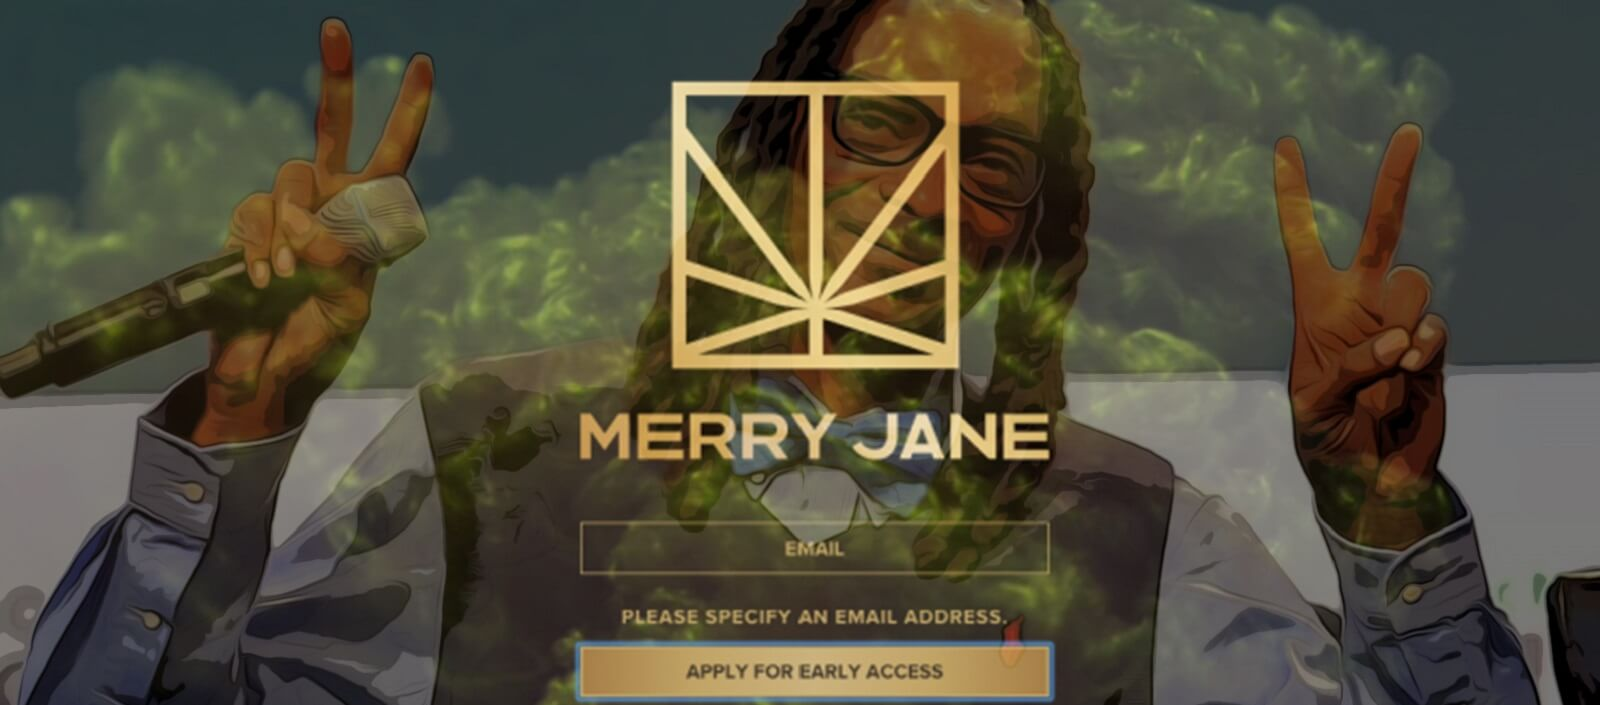 merryjane snoop dog